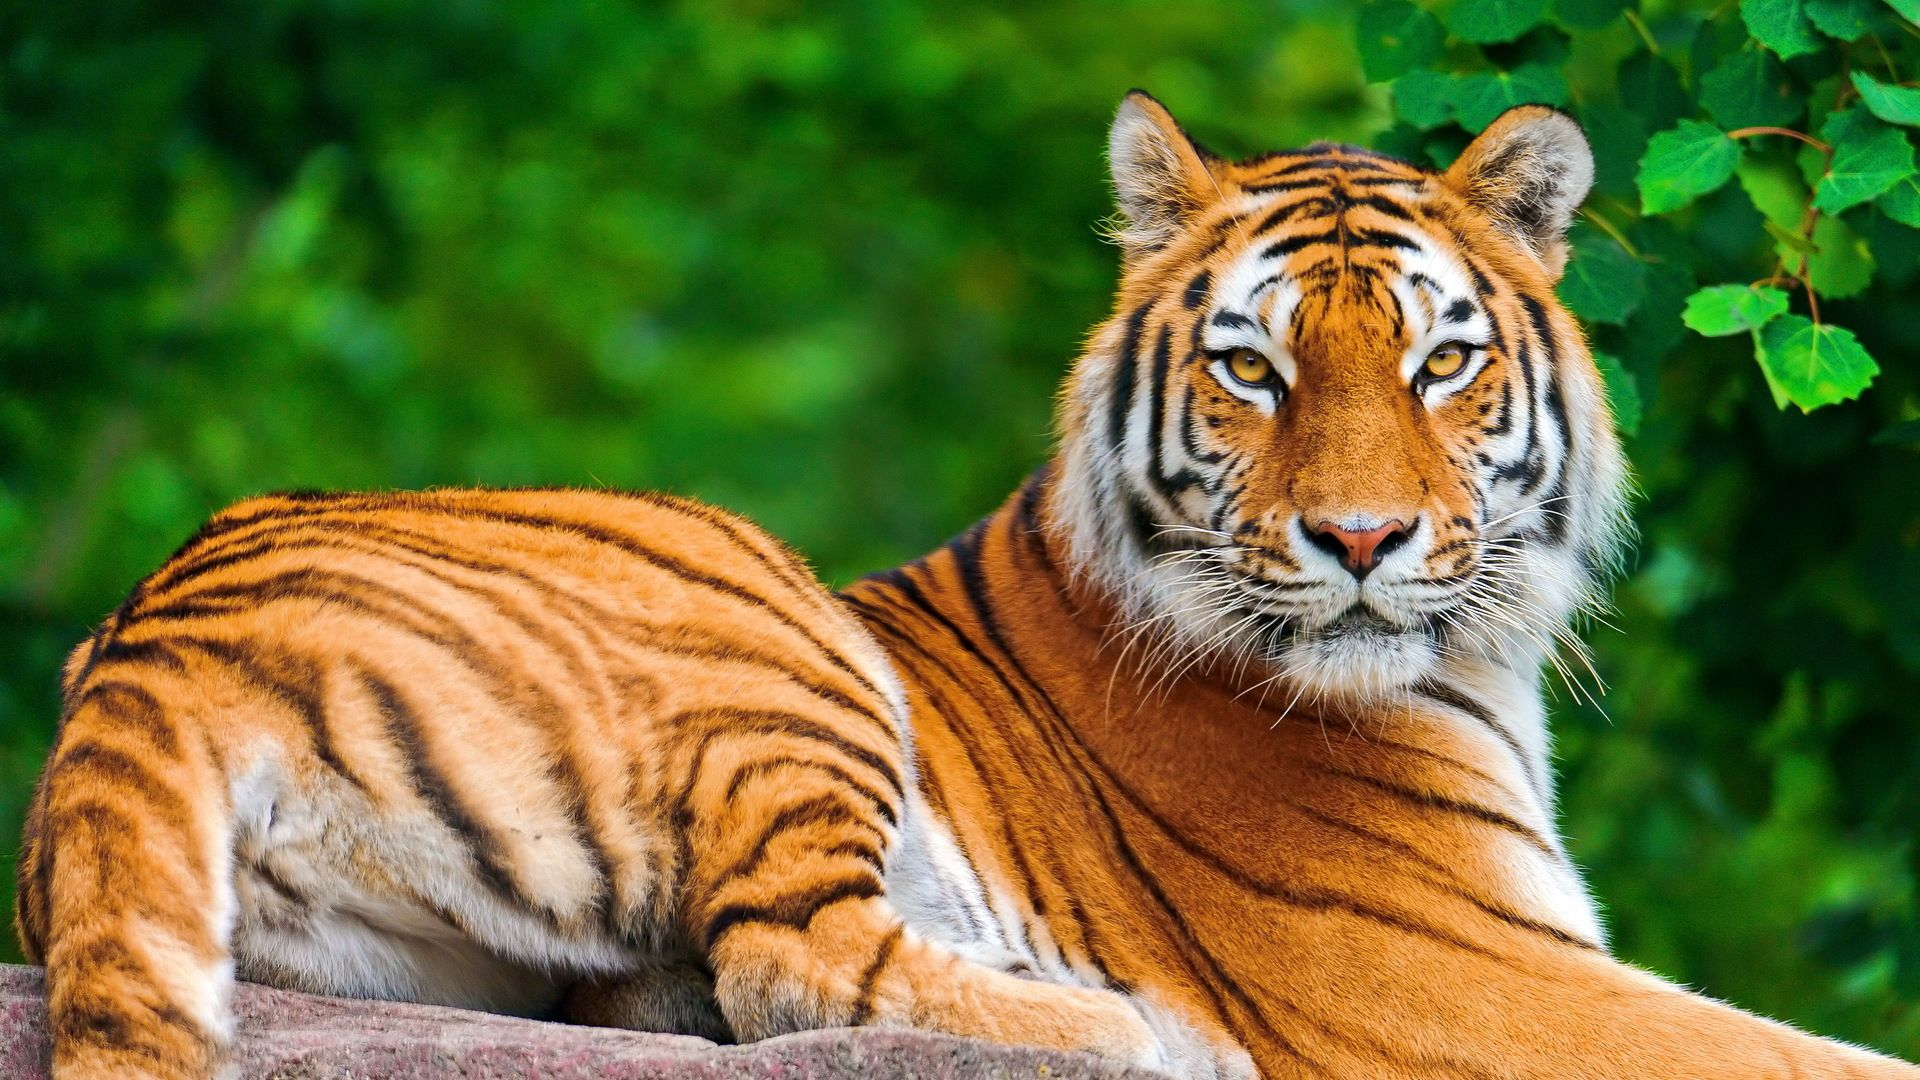 download free tiger wallpapers. amazing collection of full screen